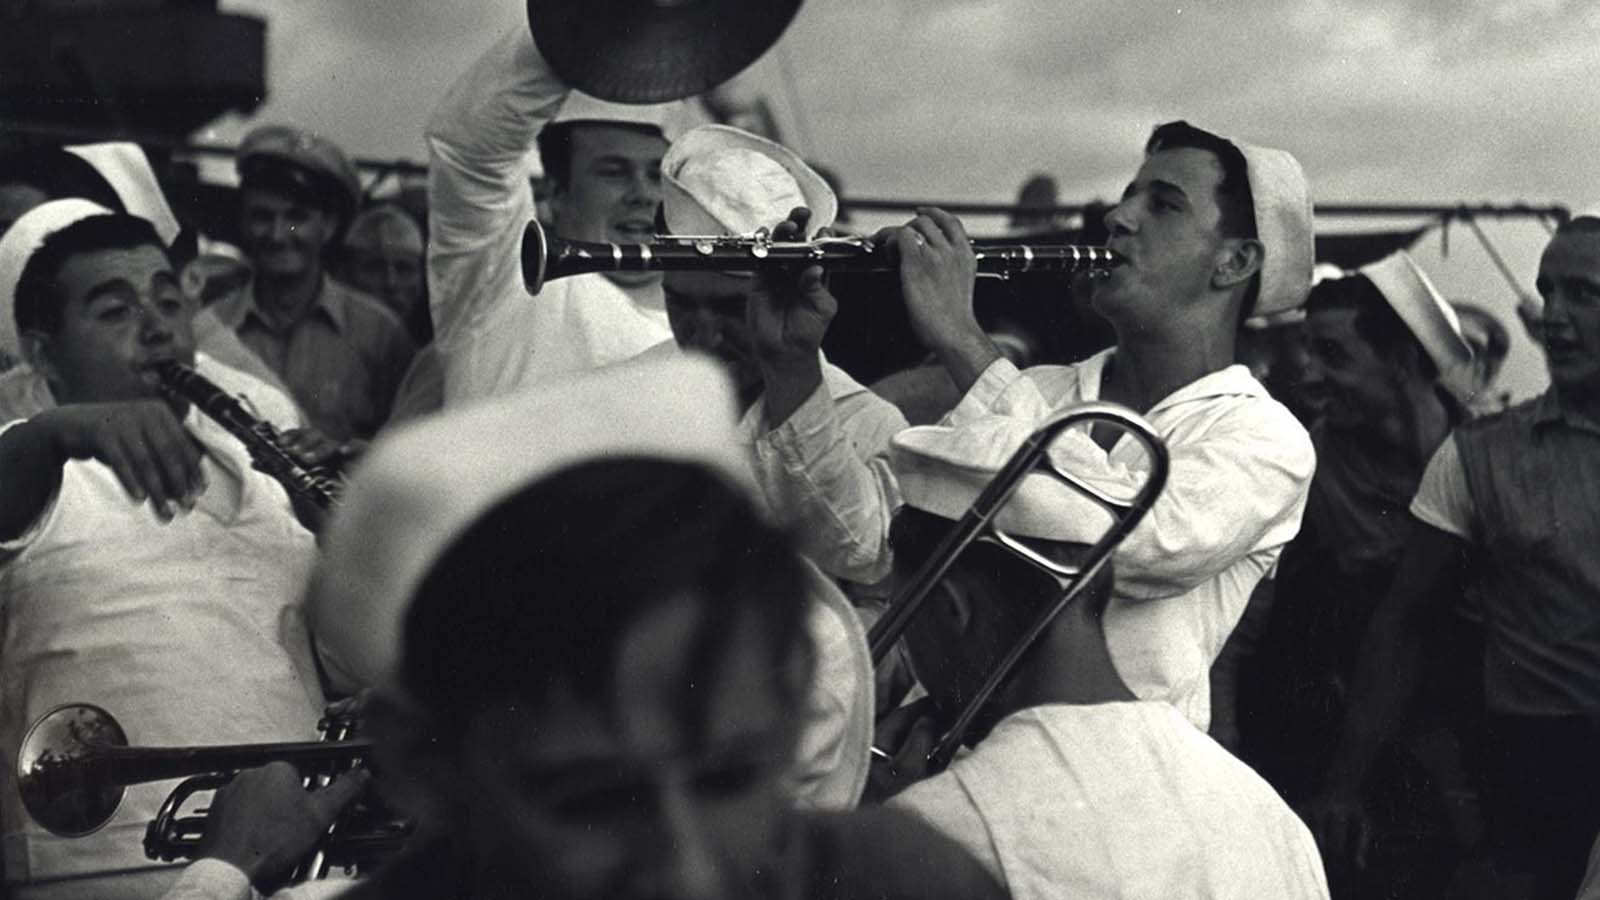 Sailors playing instruments, ca. 1943.